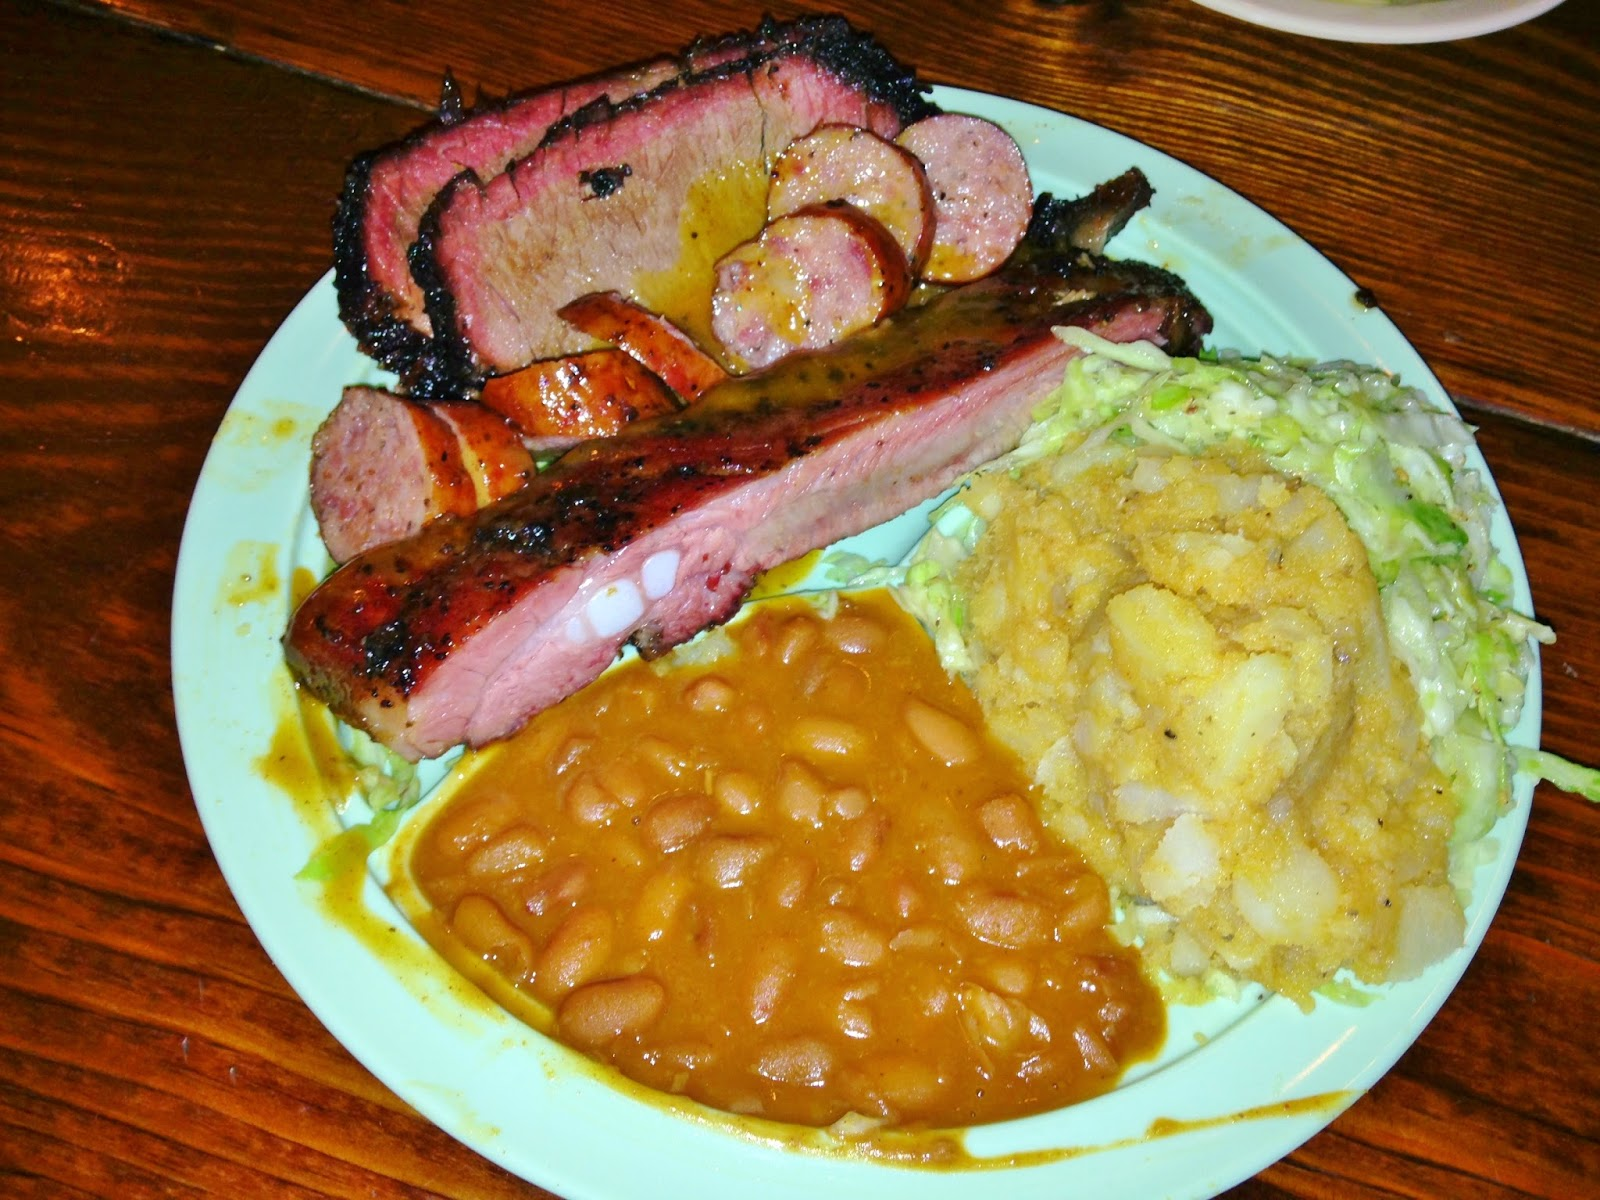 Thurman's Choice: Brisket, Sausage, Pork Rib